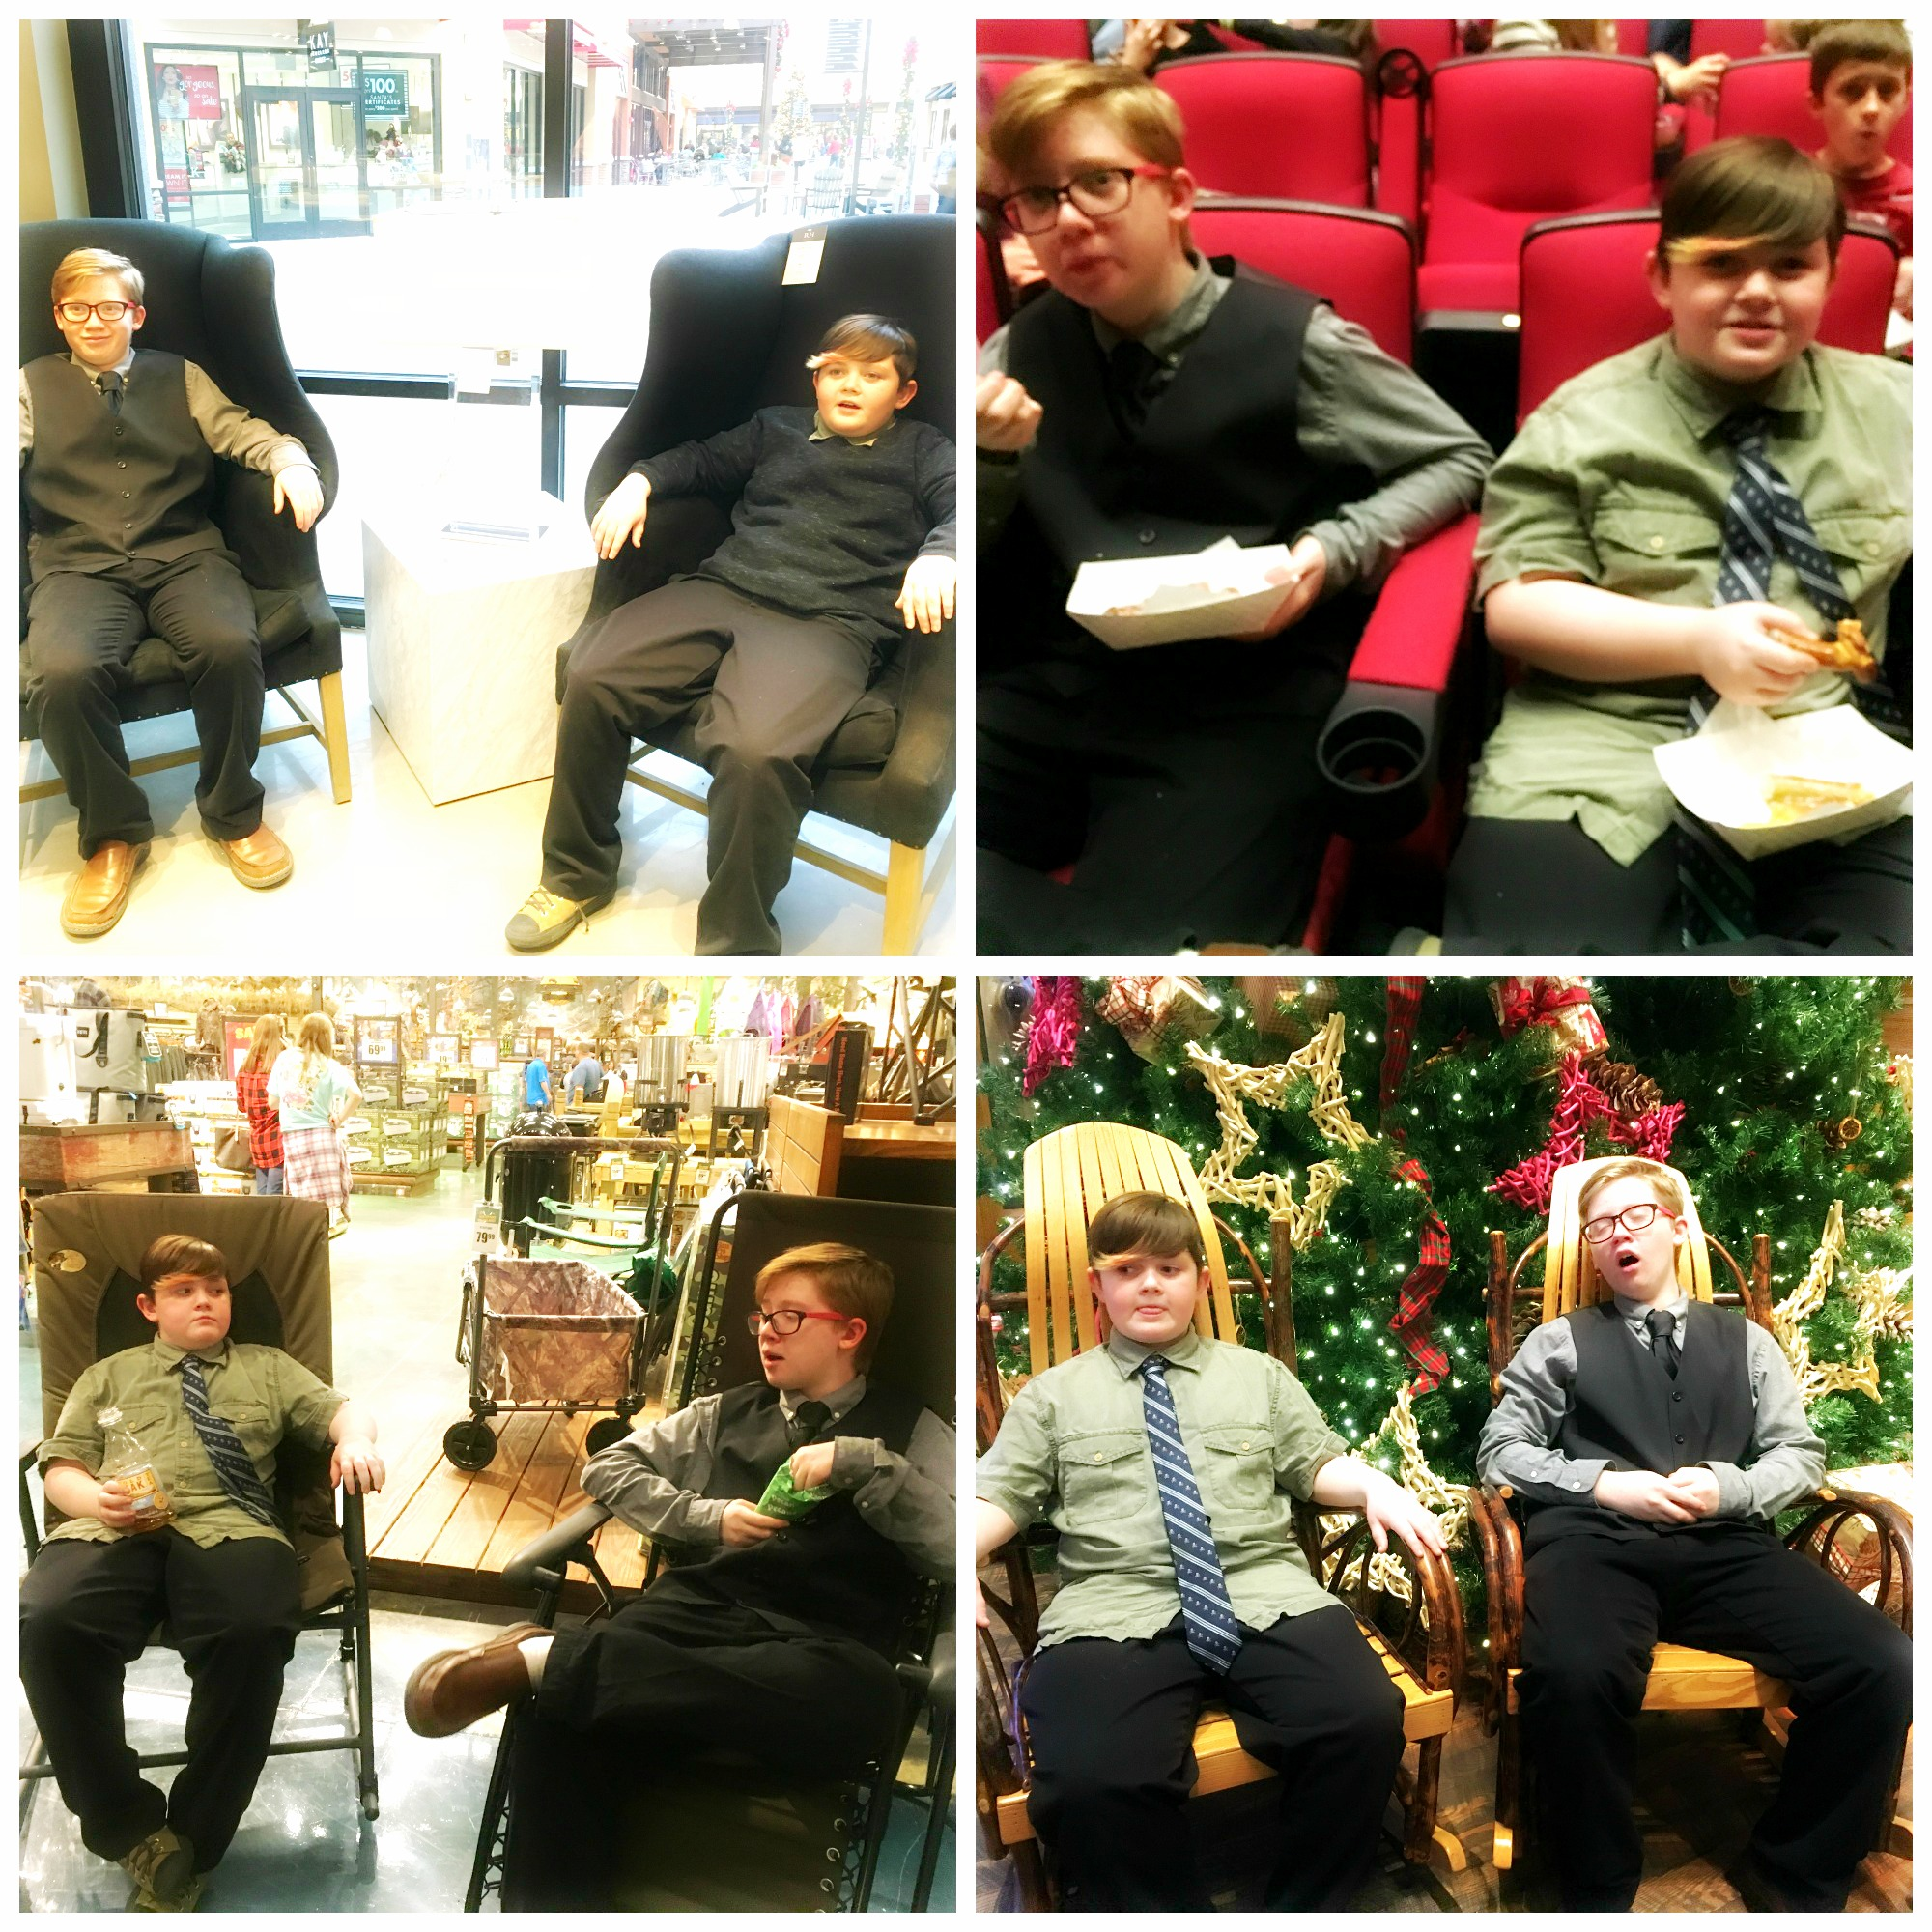 Boys in Chairs